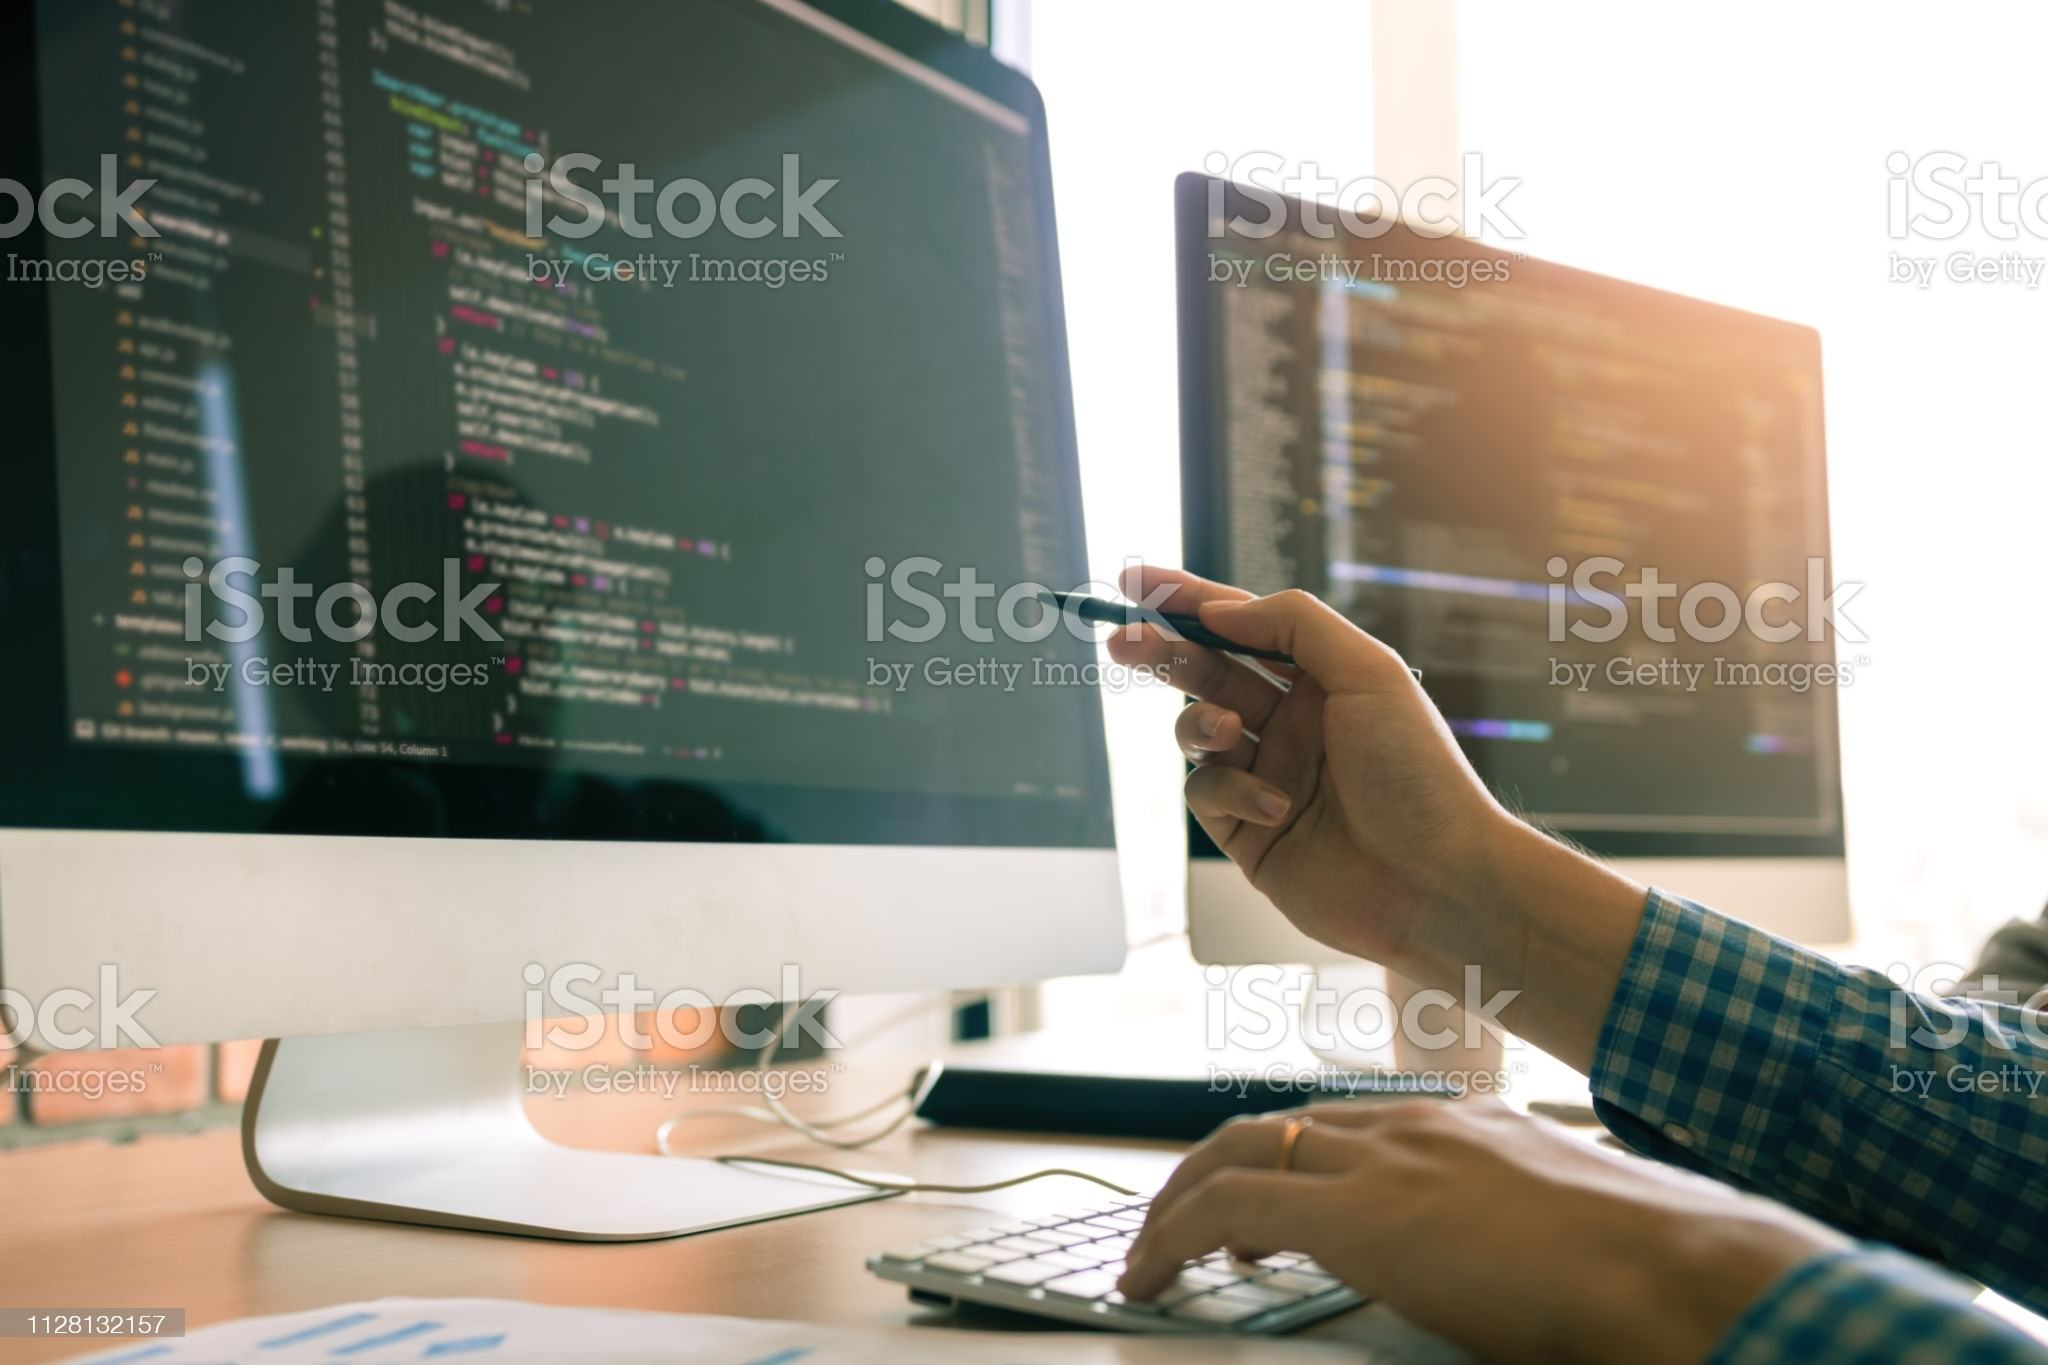 Developing programming working in a software engineers code tech applications on desk in office room.